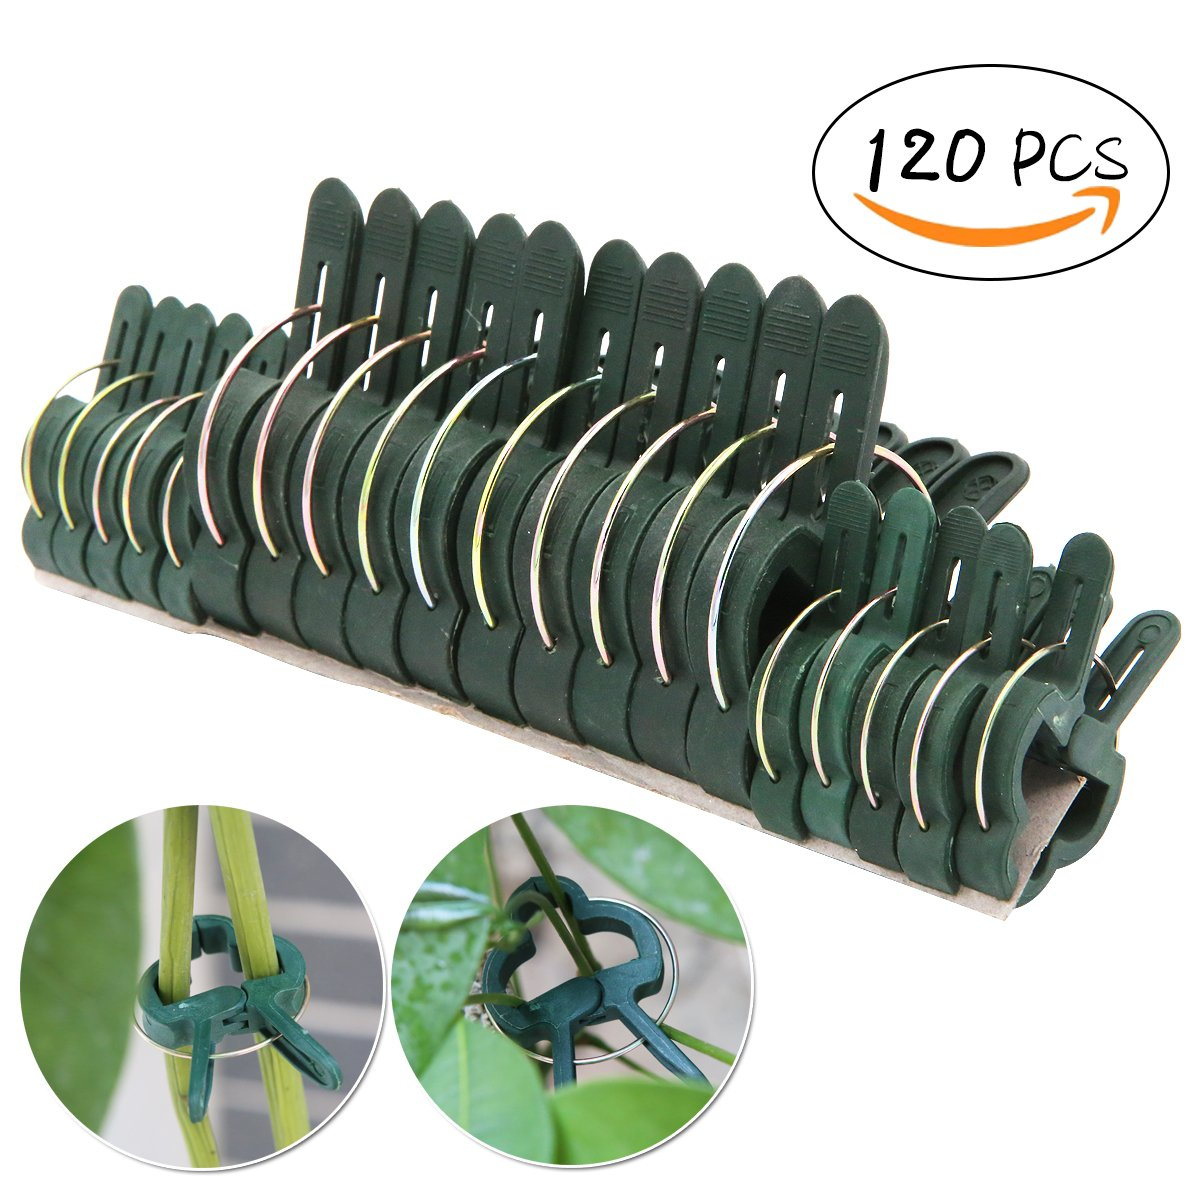 UniGift 120pcs (Small & Large) Plant Flower Clips-Garden Plant Support Staking Clips Garden Clips Supporting Stems-Vines Grow Upright